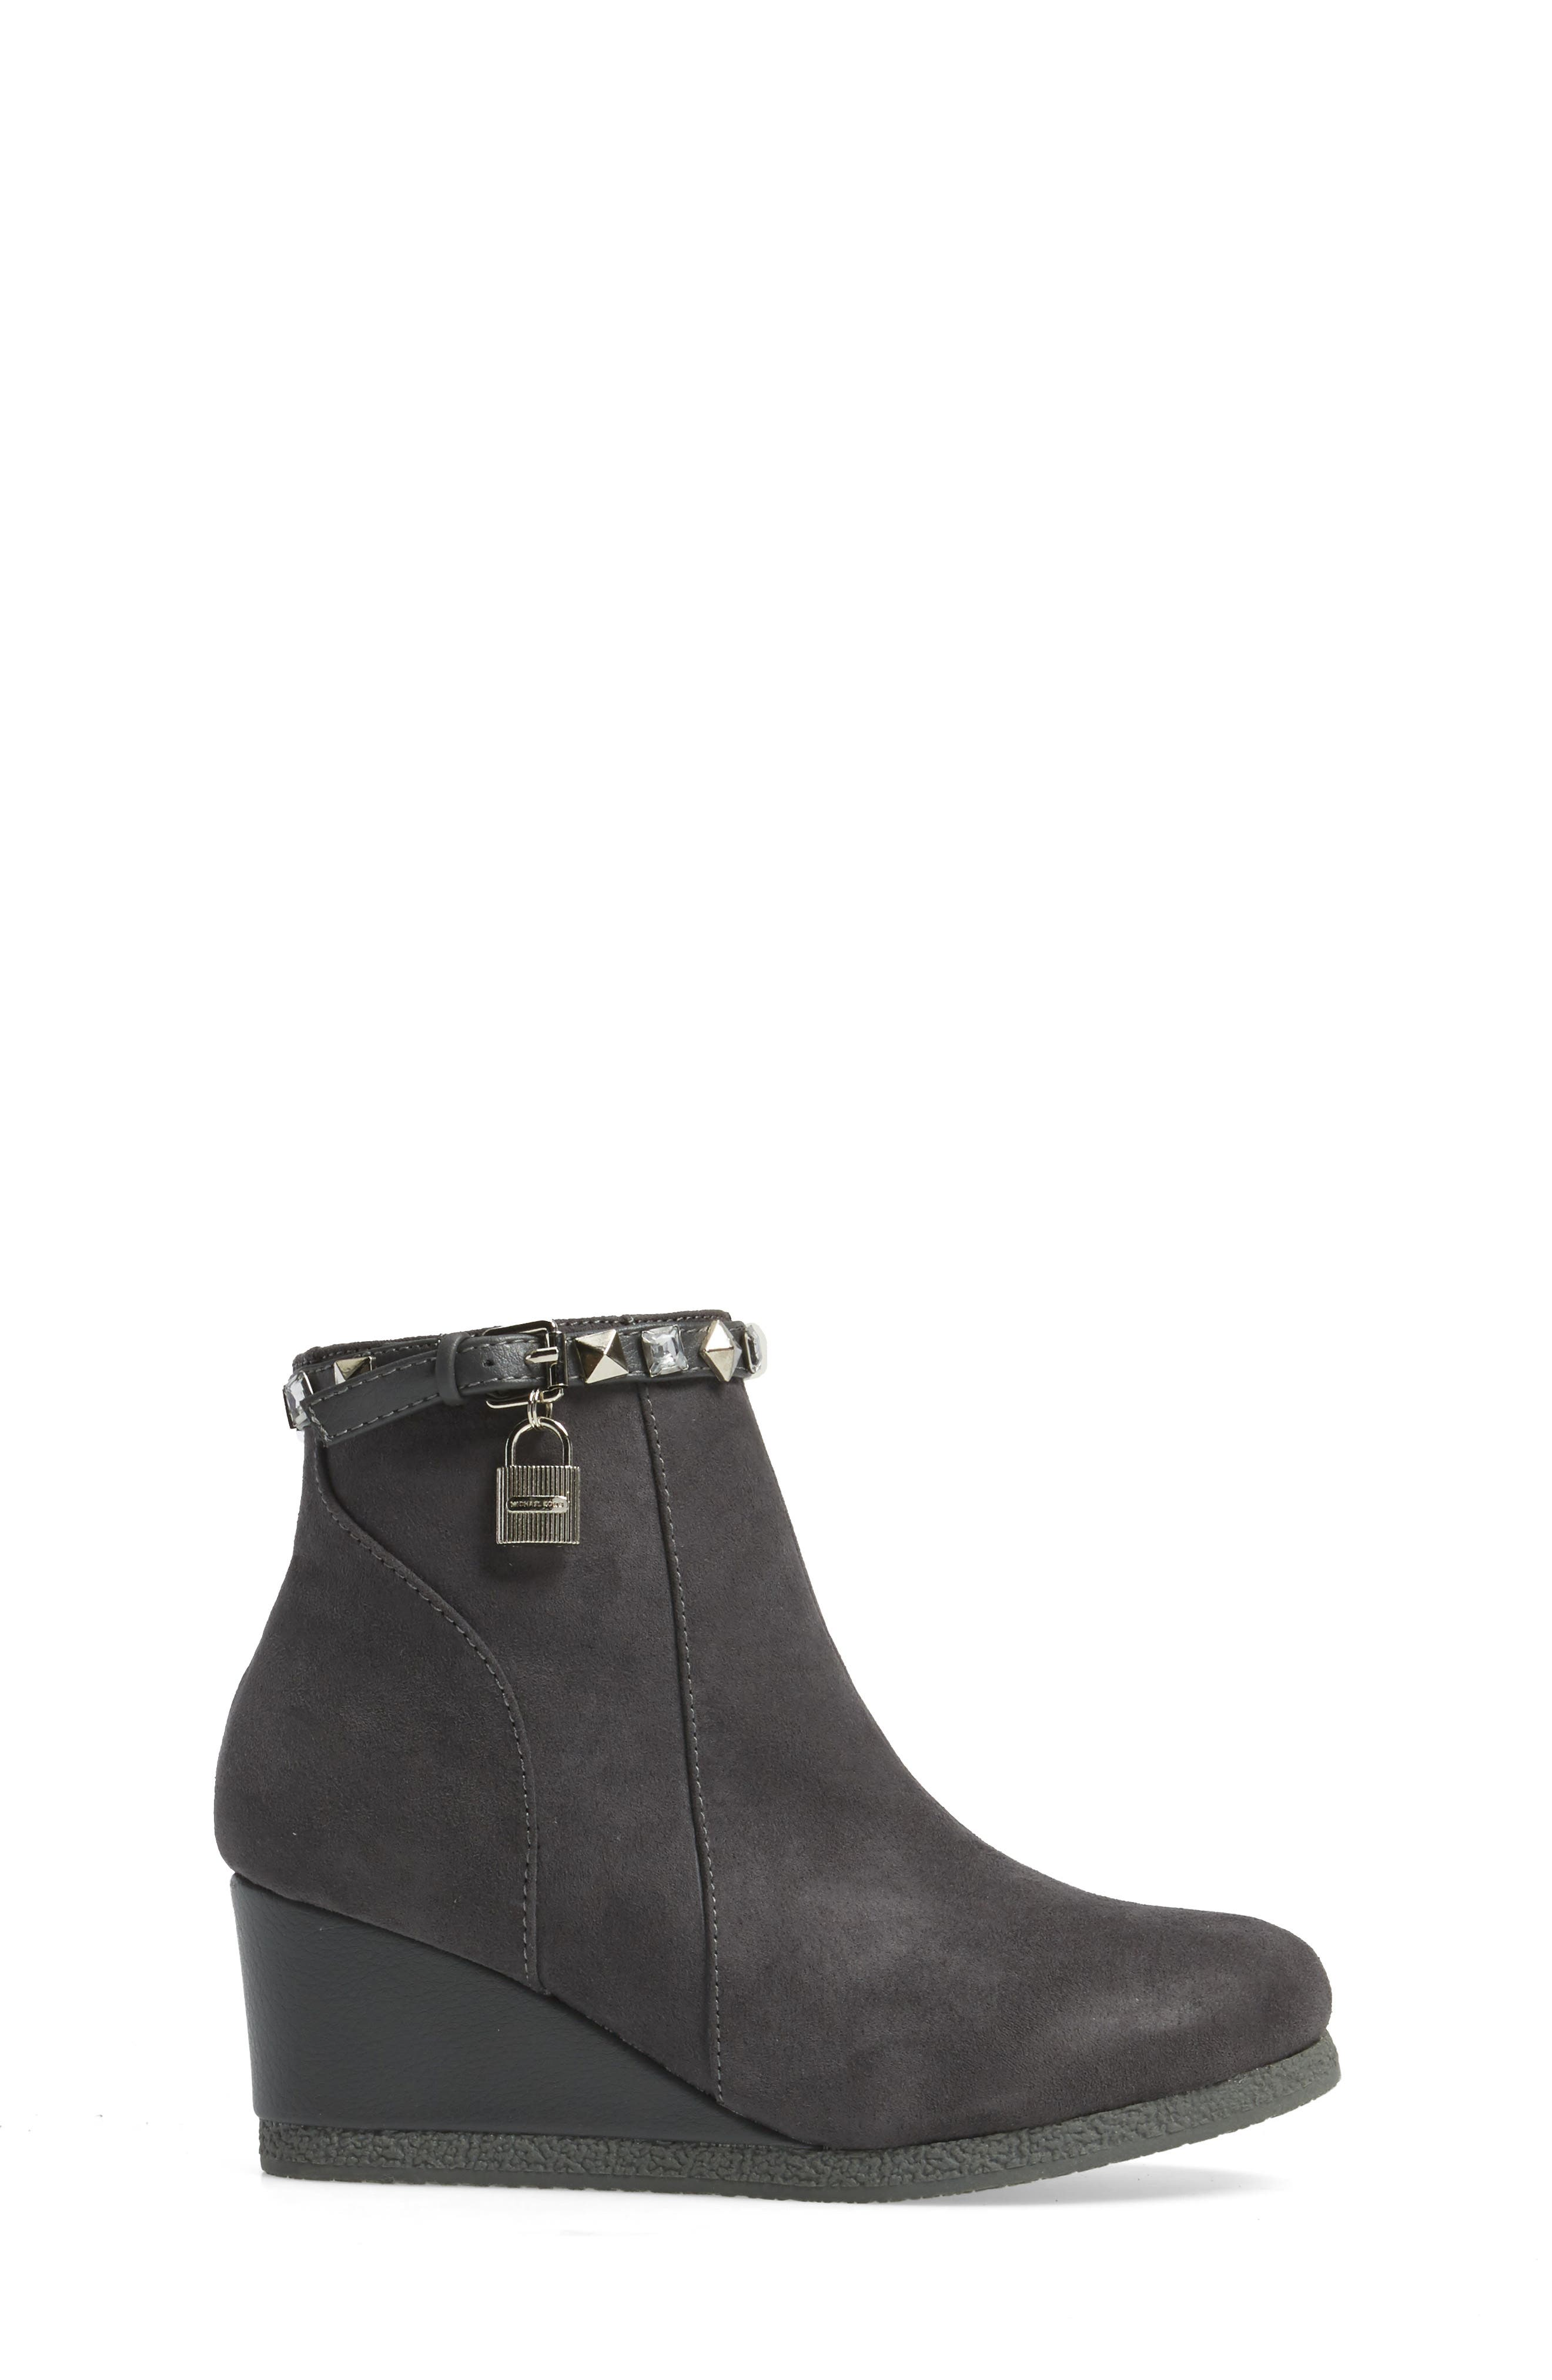 Cara Key Studded Wedge Bootie,                             Alternate thumbnail 6, color,